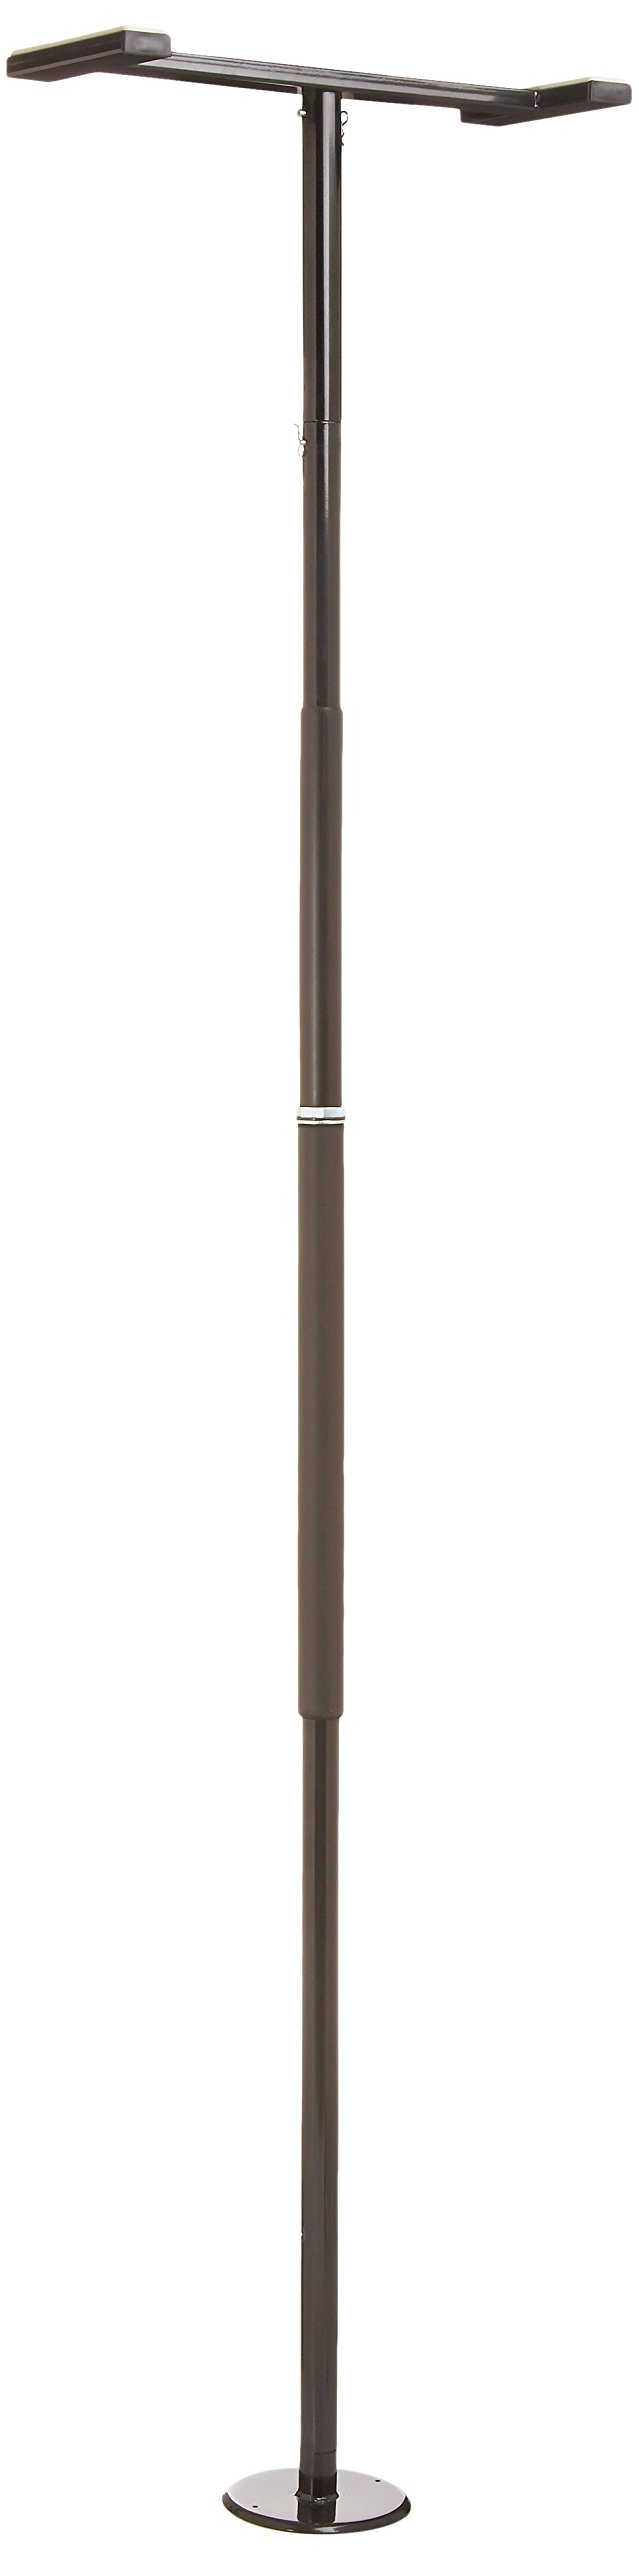 Stander Security Pole - Tension Mounted Elderly Transfer Pole + Bathroom Aids to Daily Living & Assist Grab Bar - Metallic Black